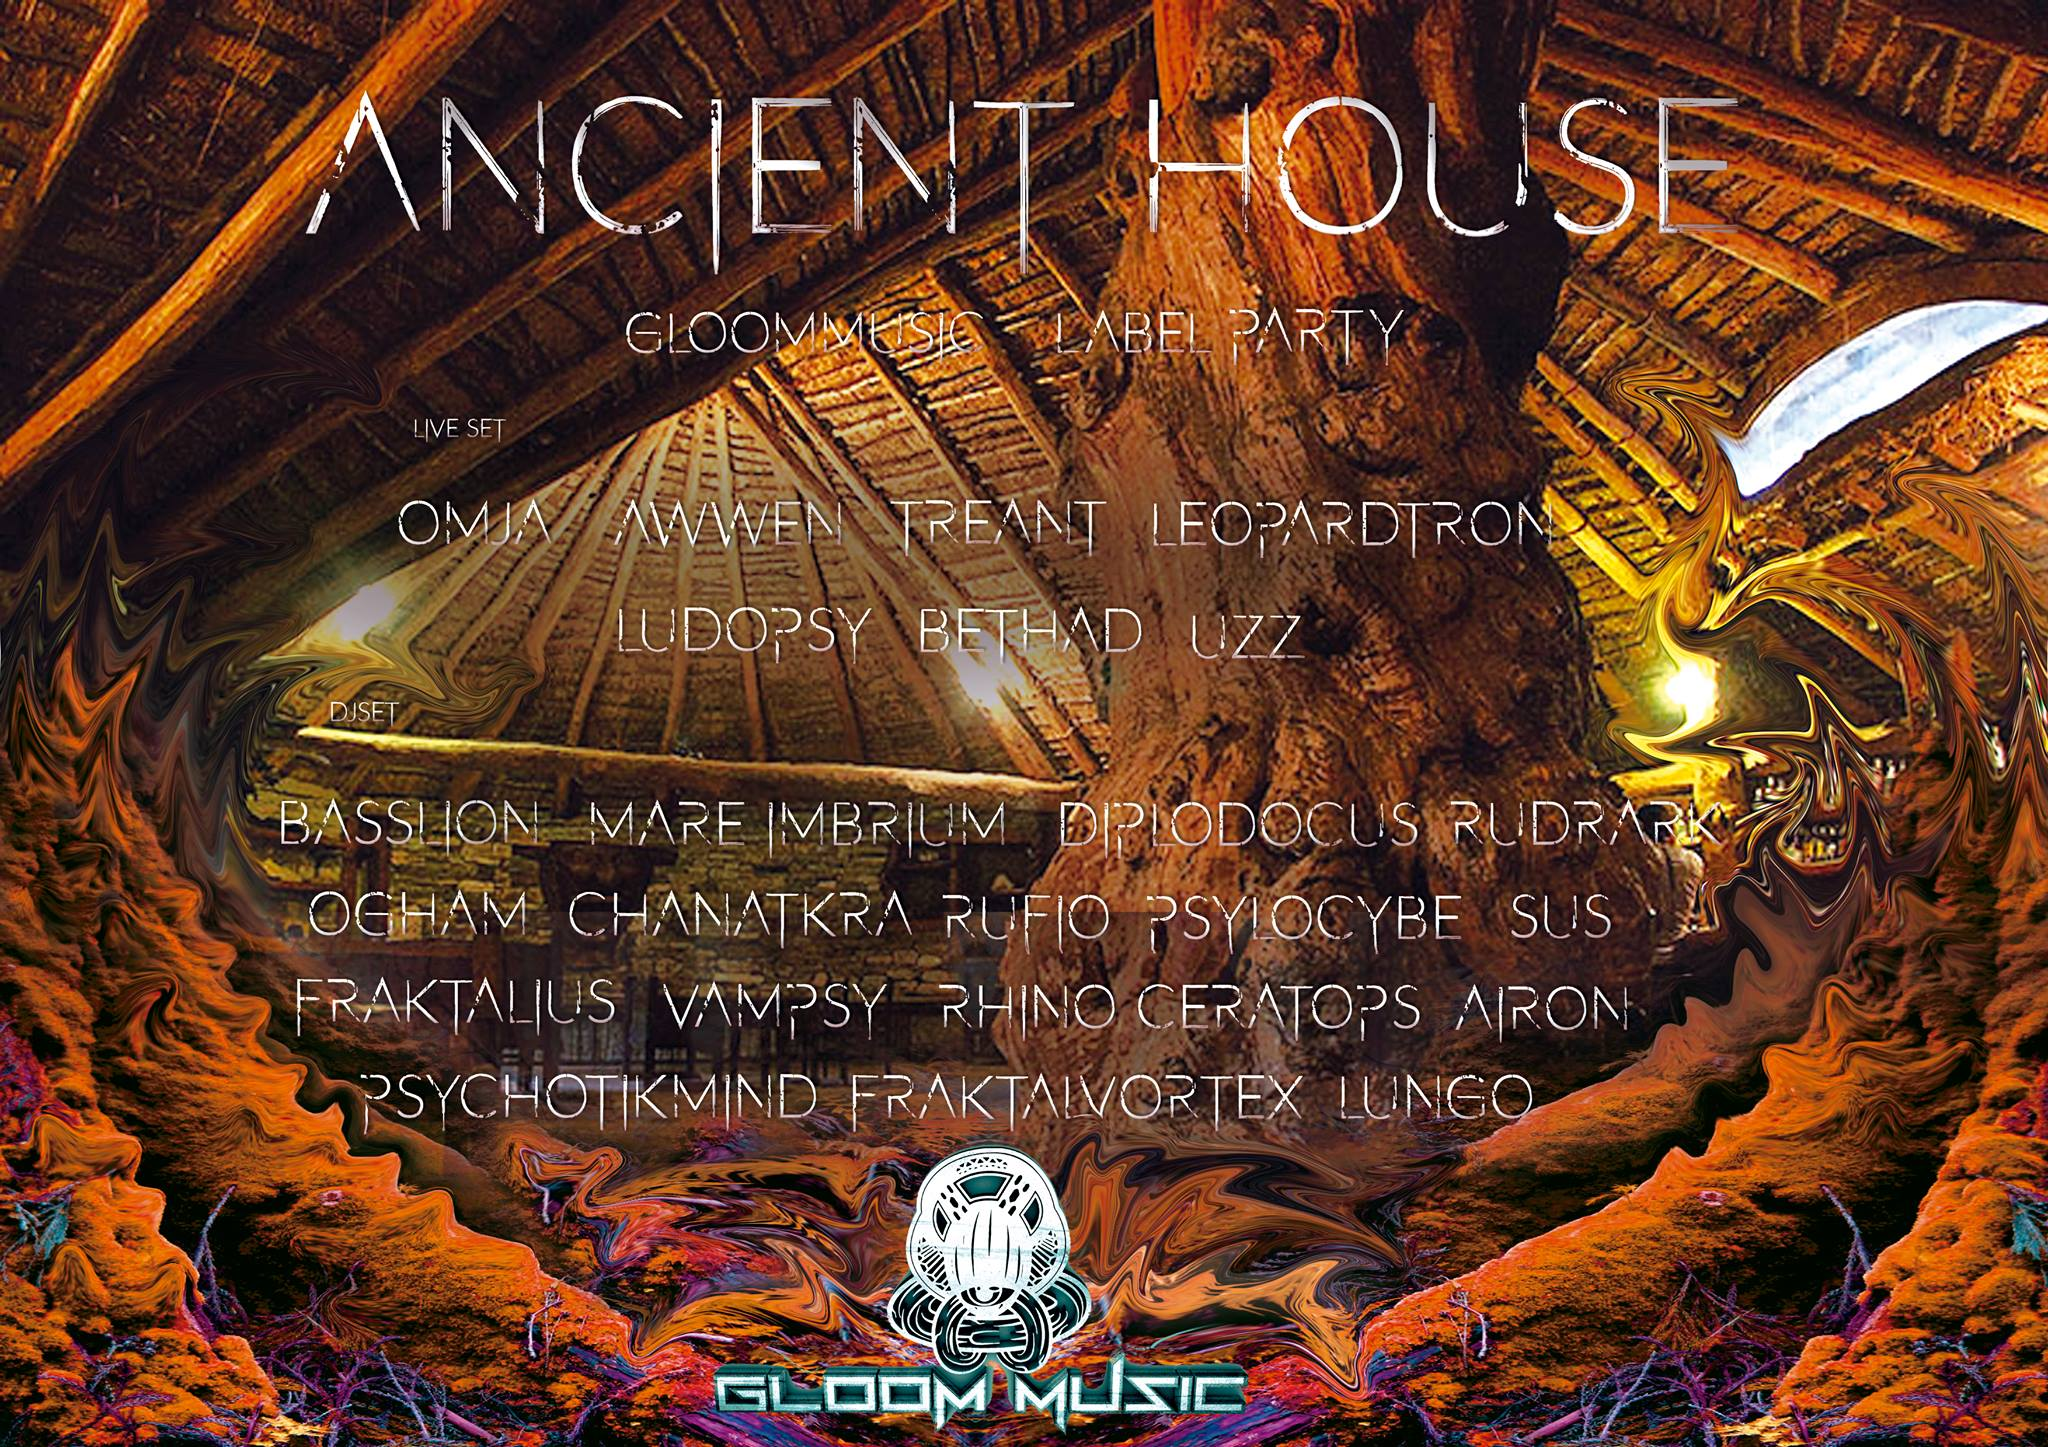 GloOm Music Label Party; The Ancient House III